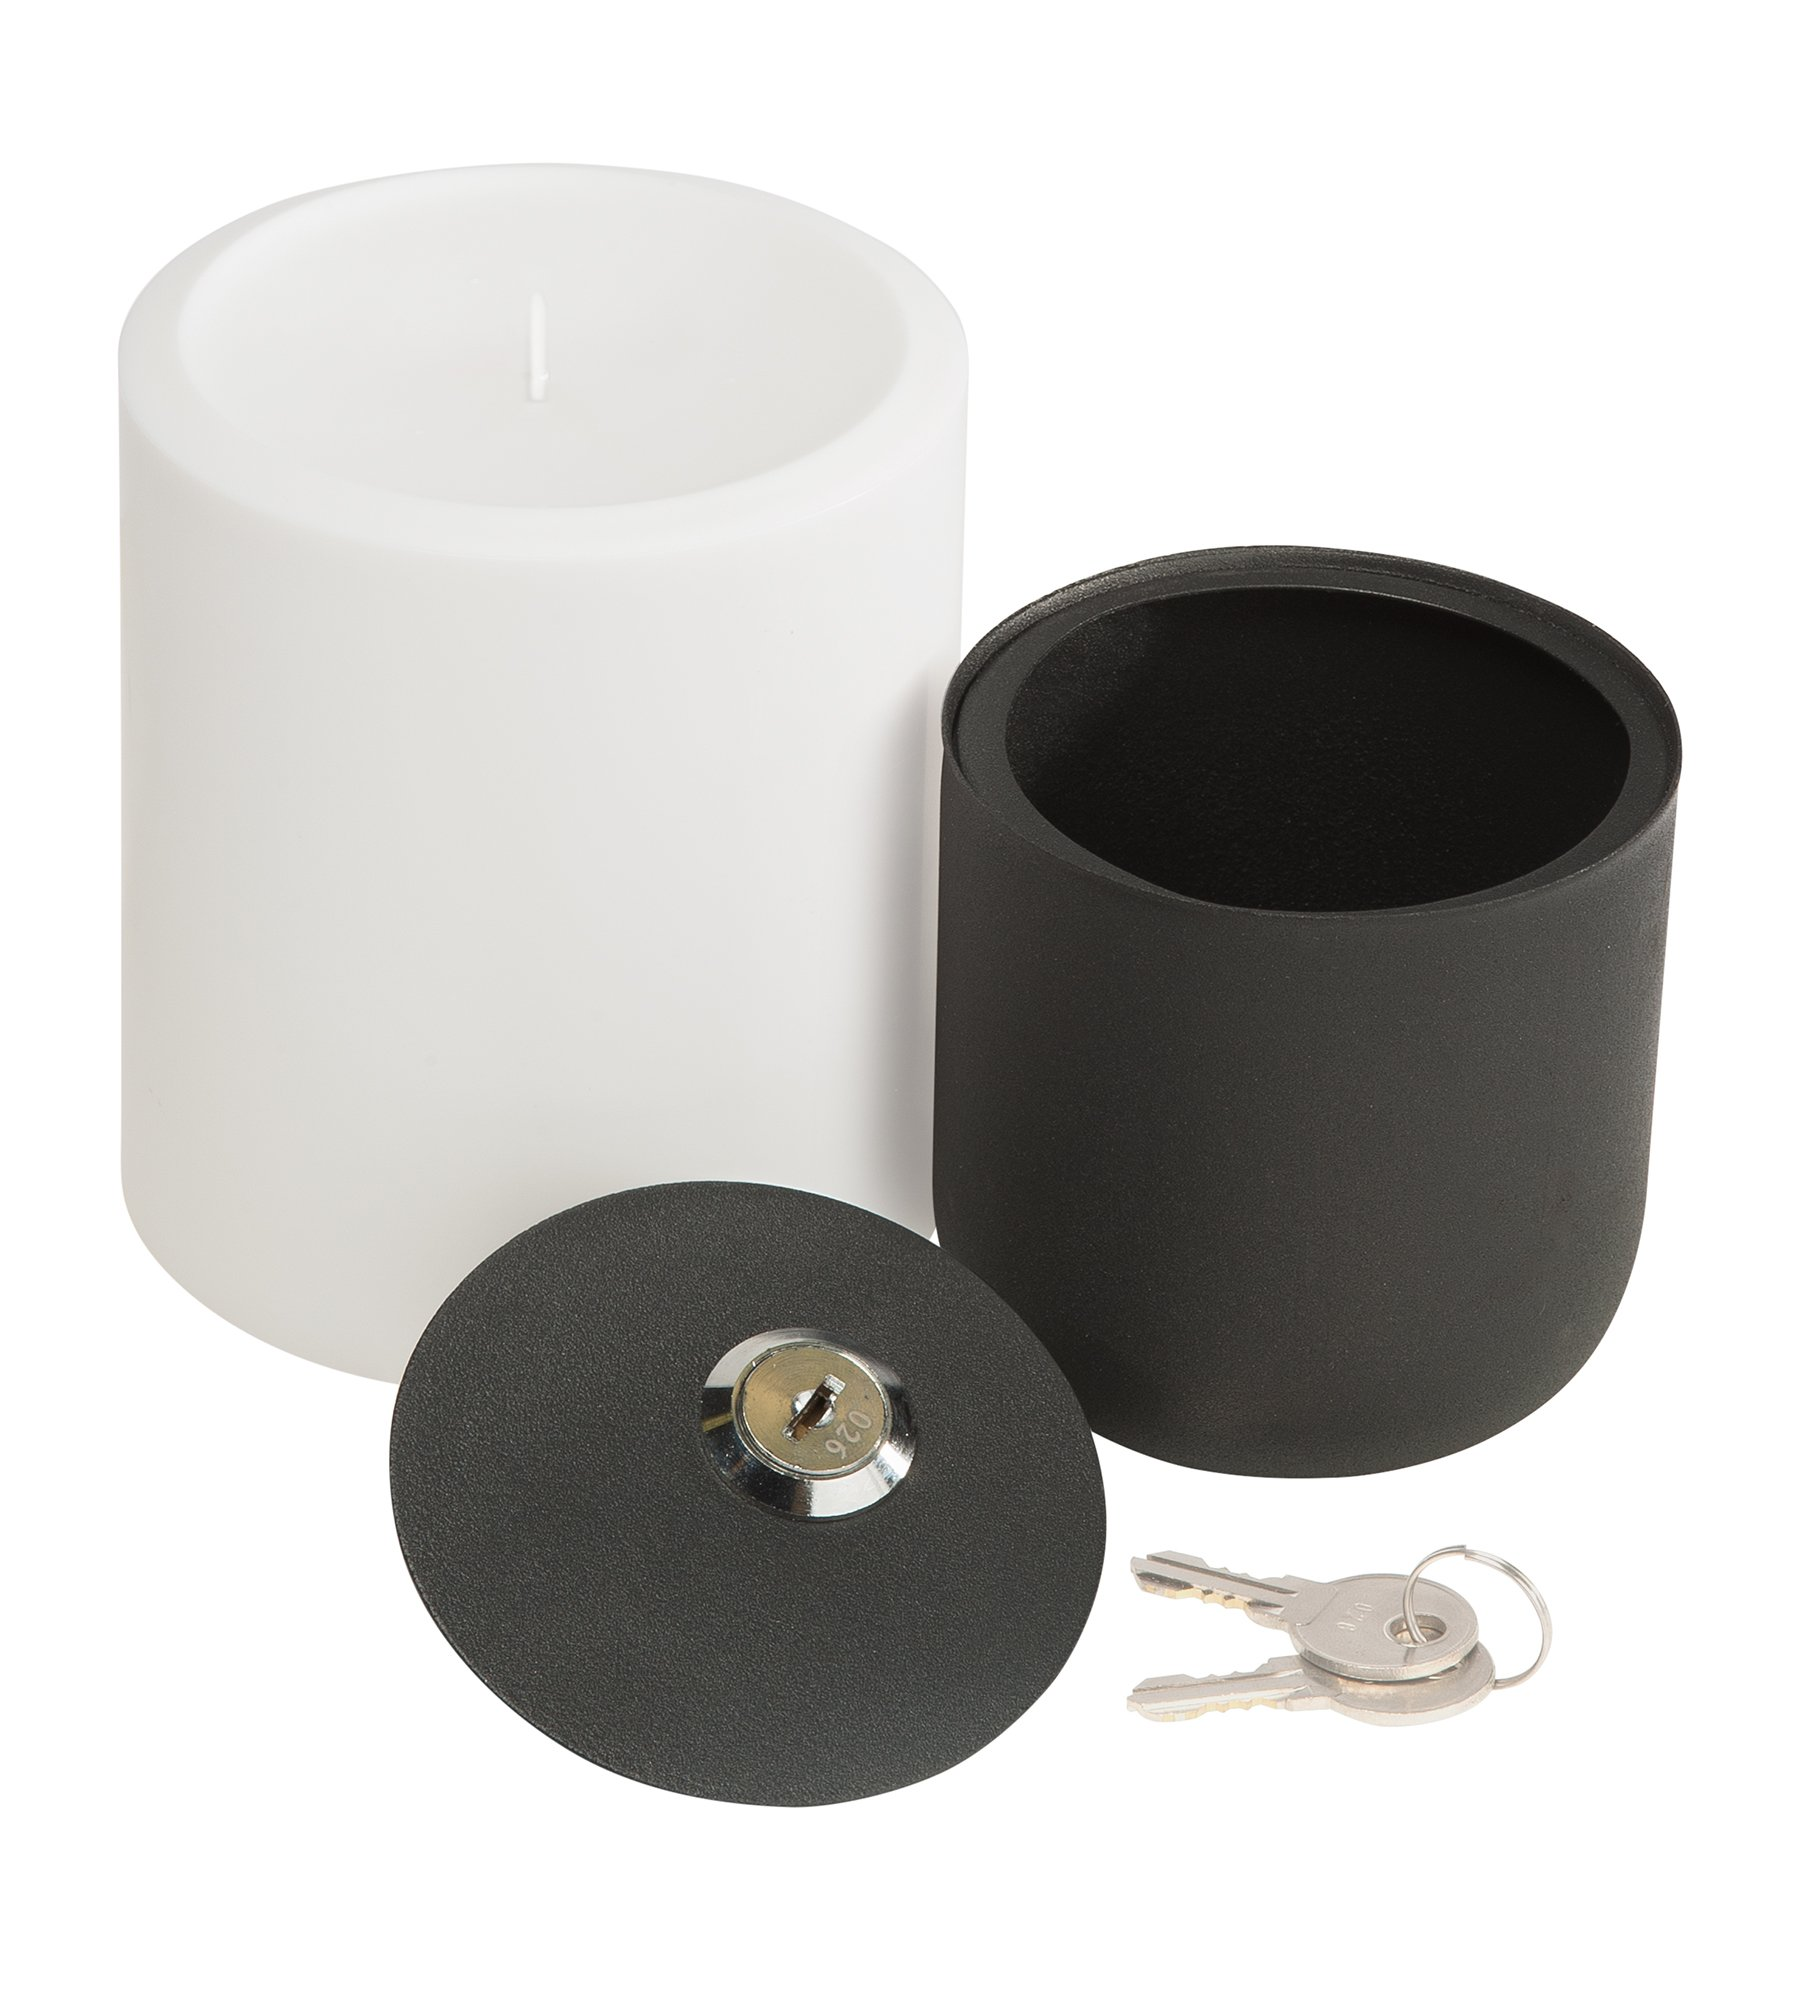 Hidden Candle Safe - Plastic Candle Safely Stores Small Valuables like Cash, Jewelry, Credit Cards; Secure Mounting Lockbox for Tabletop